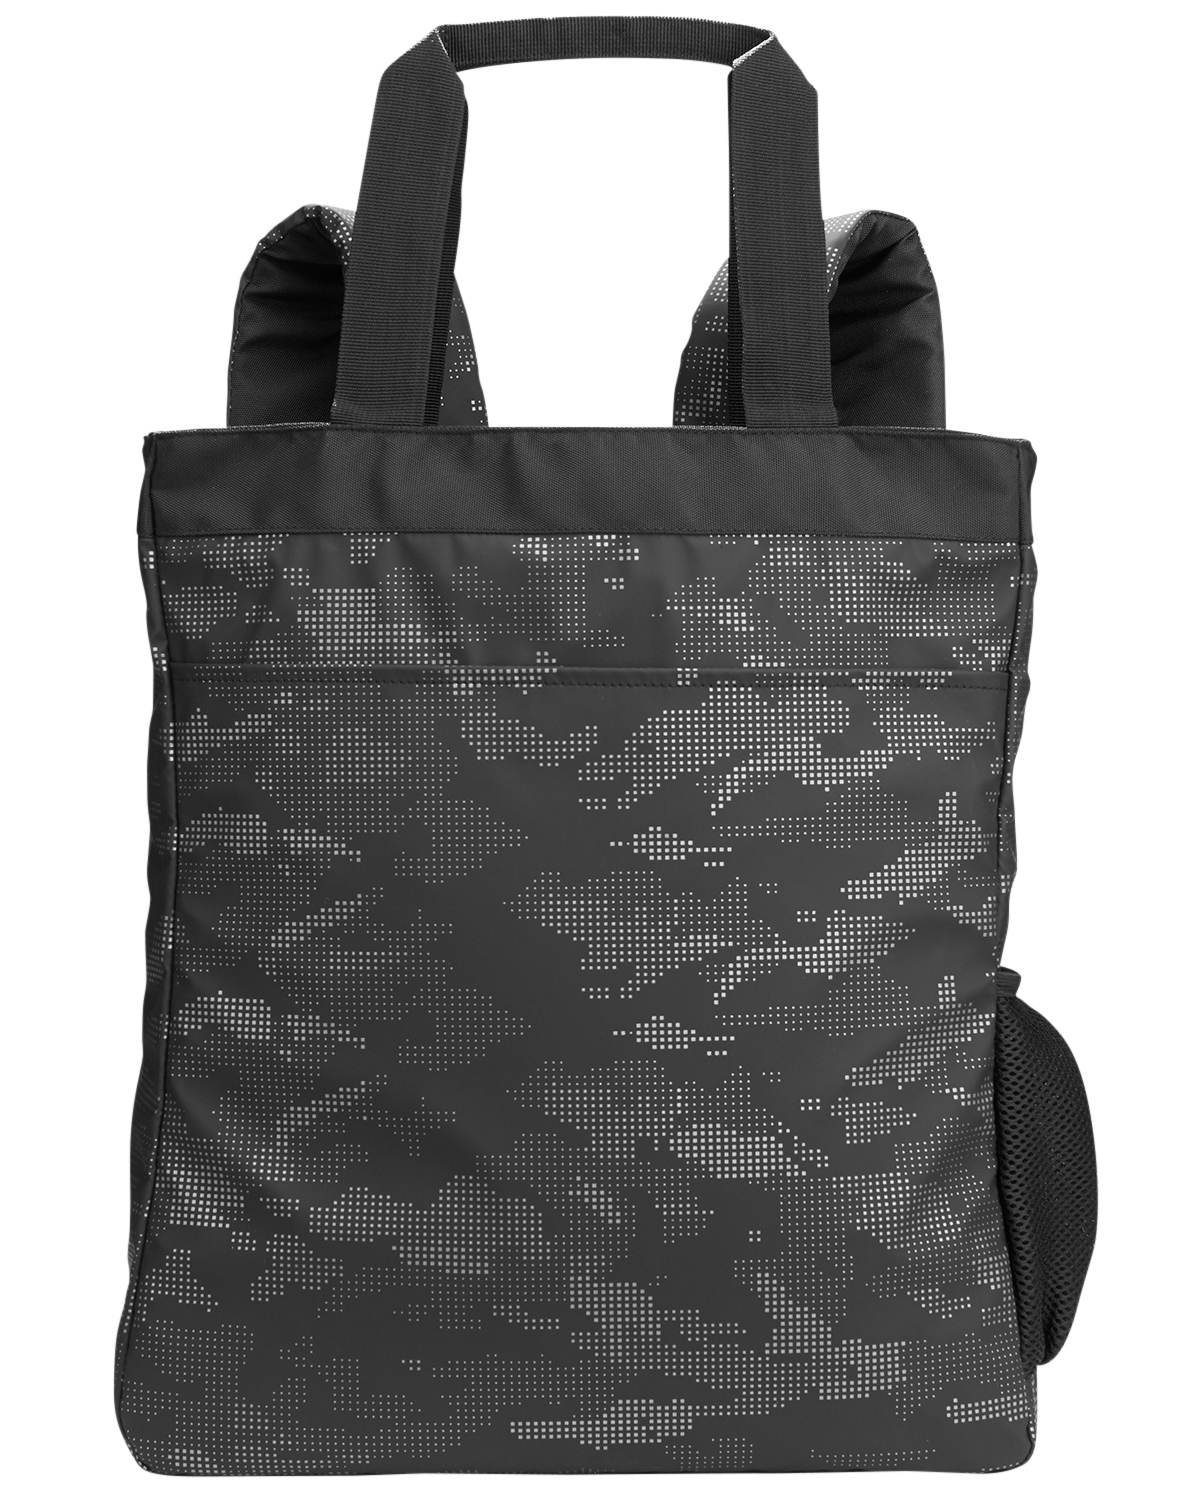 Reflective Convertible Backpack Tote